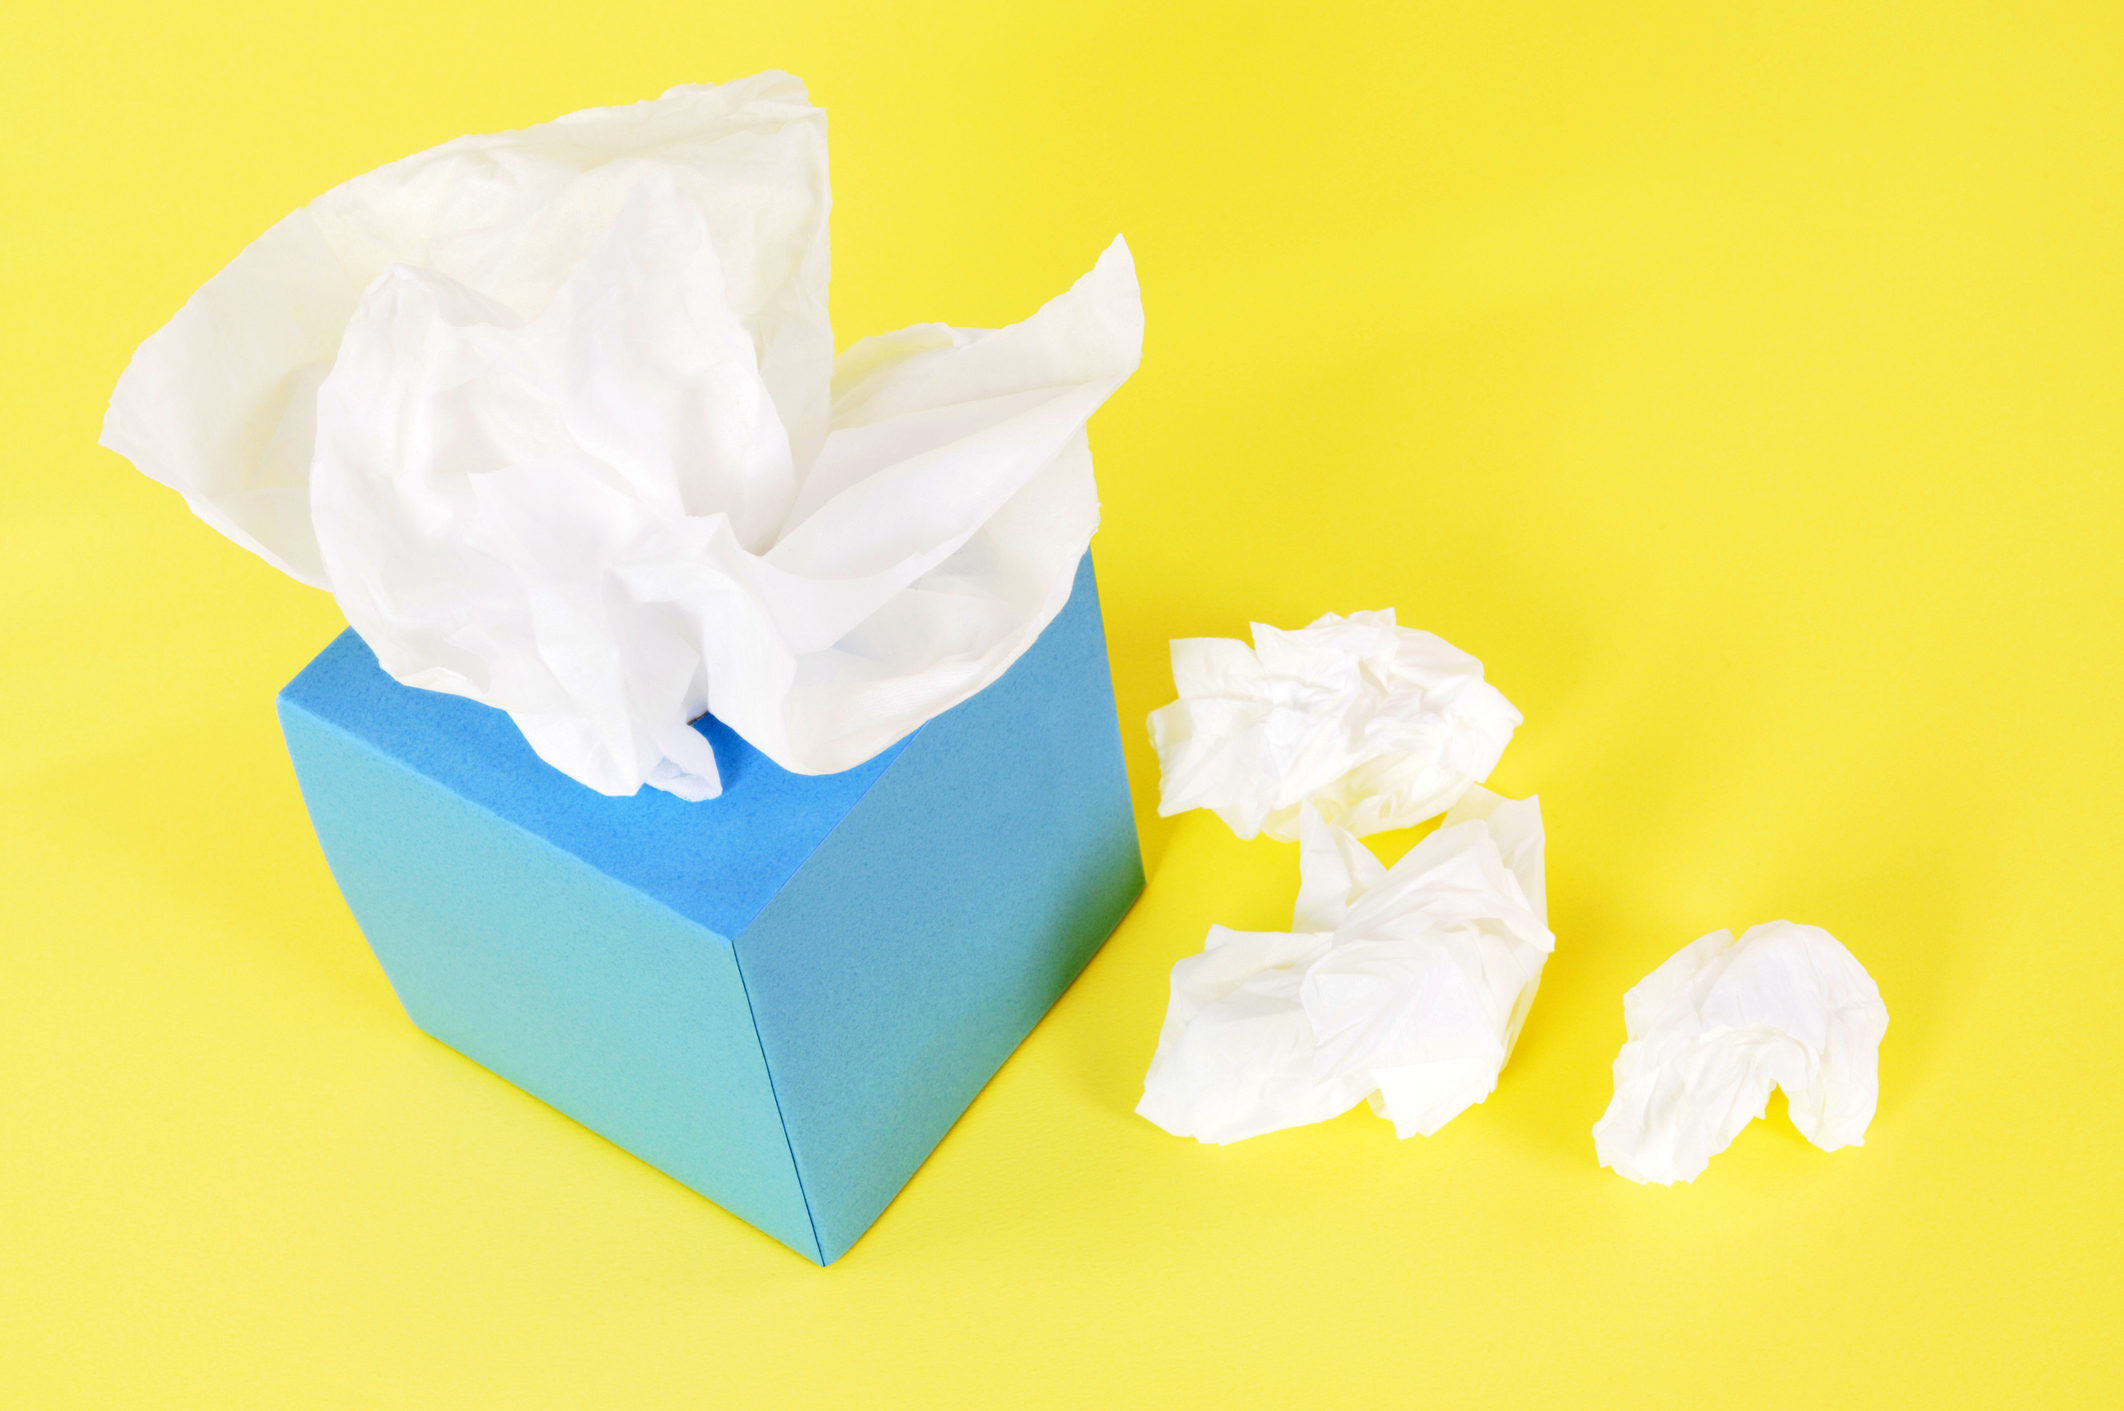 Tissues in blue box on a yellow background.  Alternative file shown below: